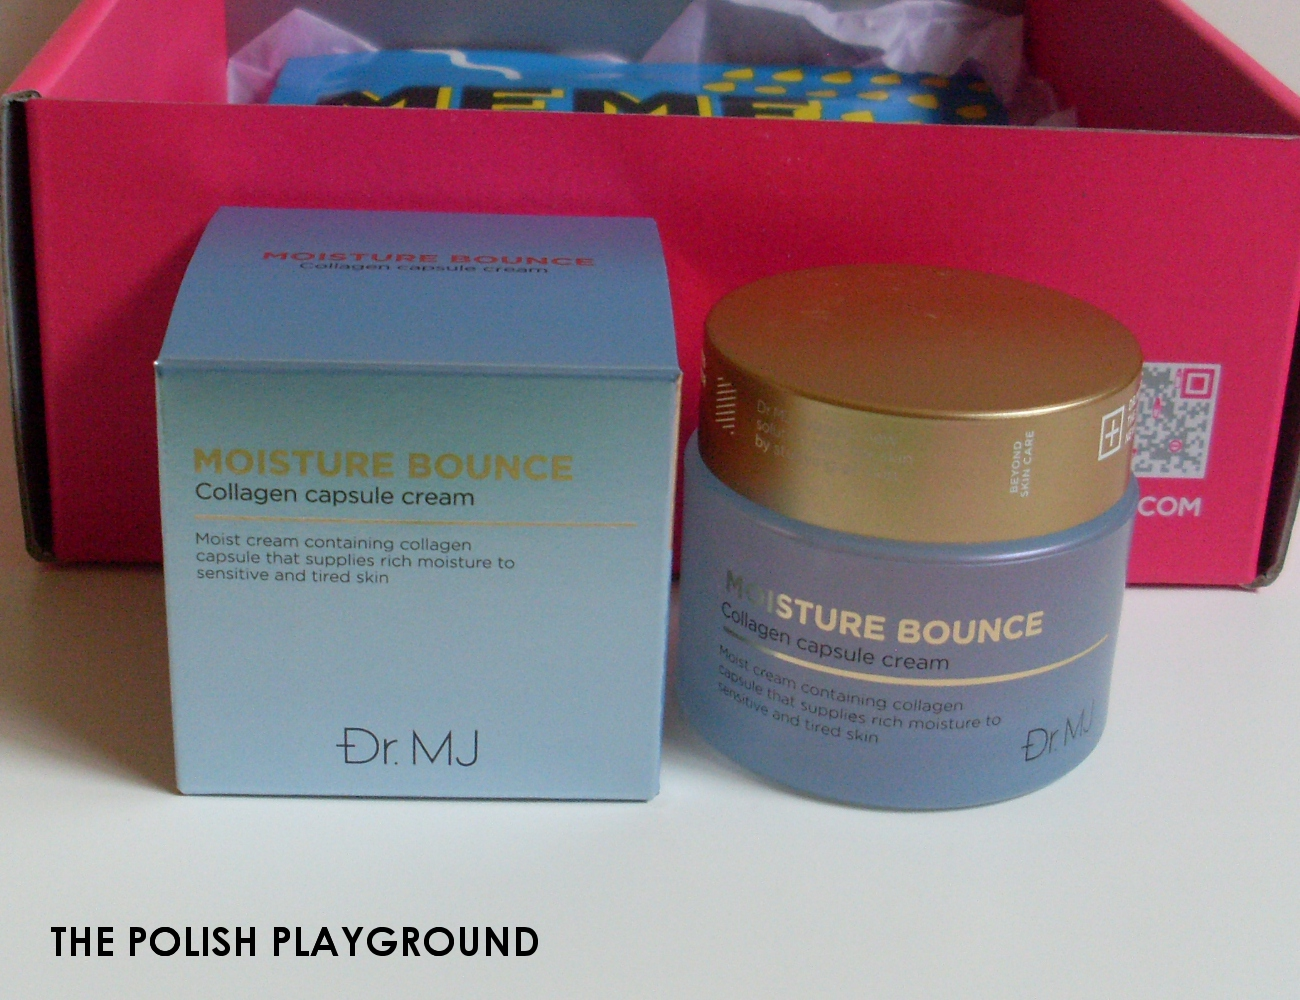 Memebox Special #81 The Next Best Thing in Skin Care Unboxing - Dr.MJ Moisture Bounce Collagen Capsule Cream